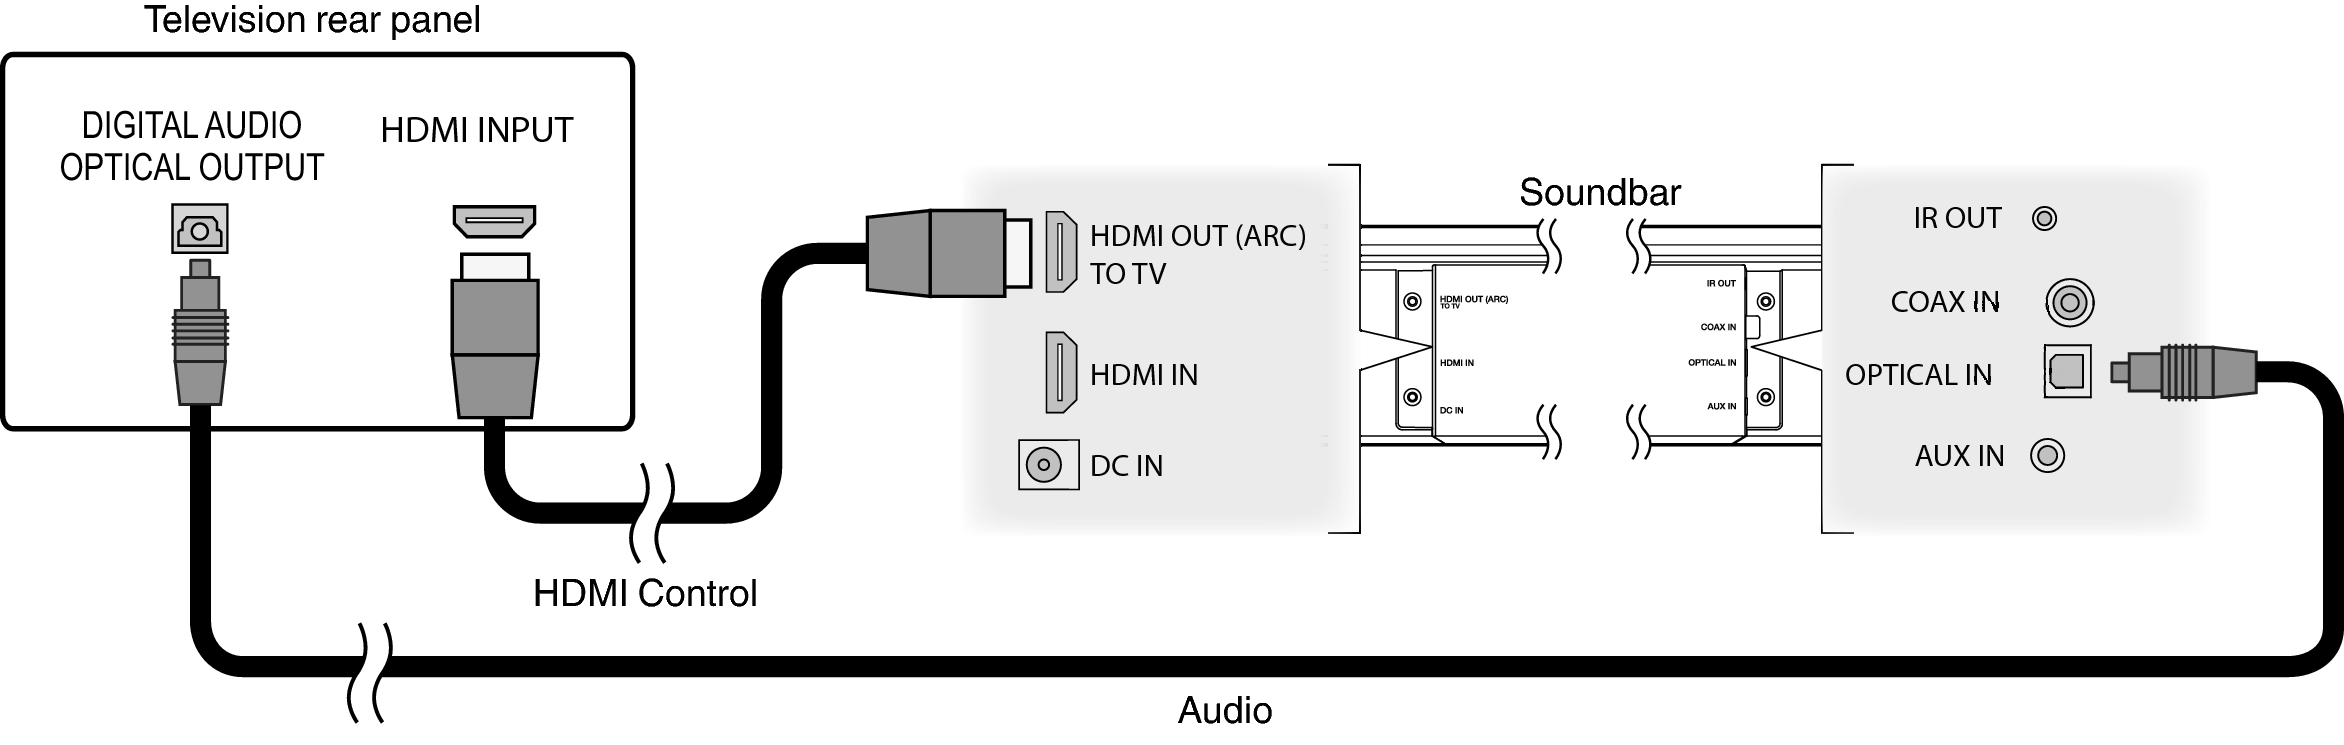 2 Playing Hdmi Without Arc Better Choice Heos Homecinema